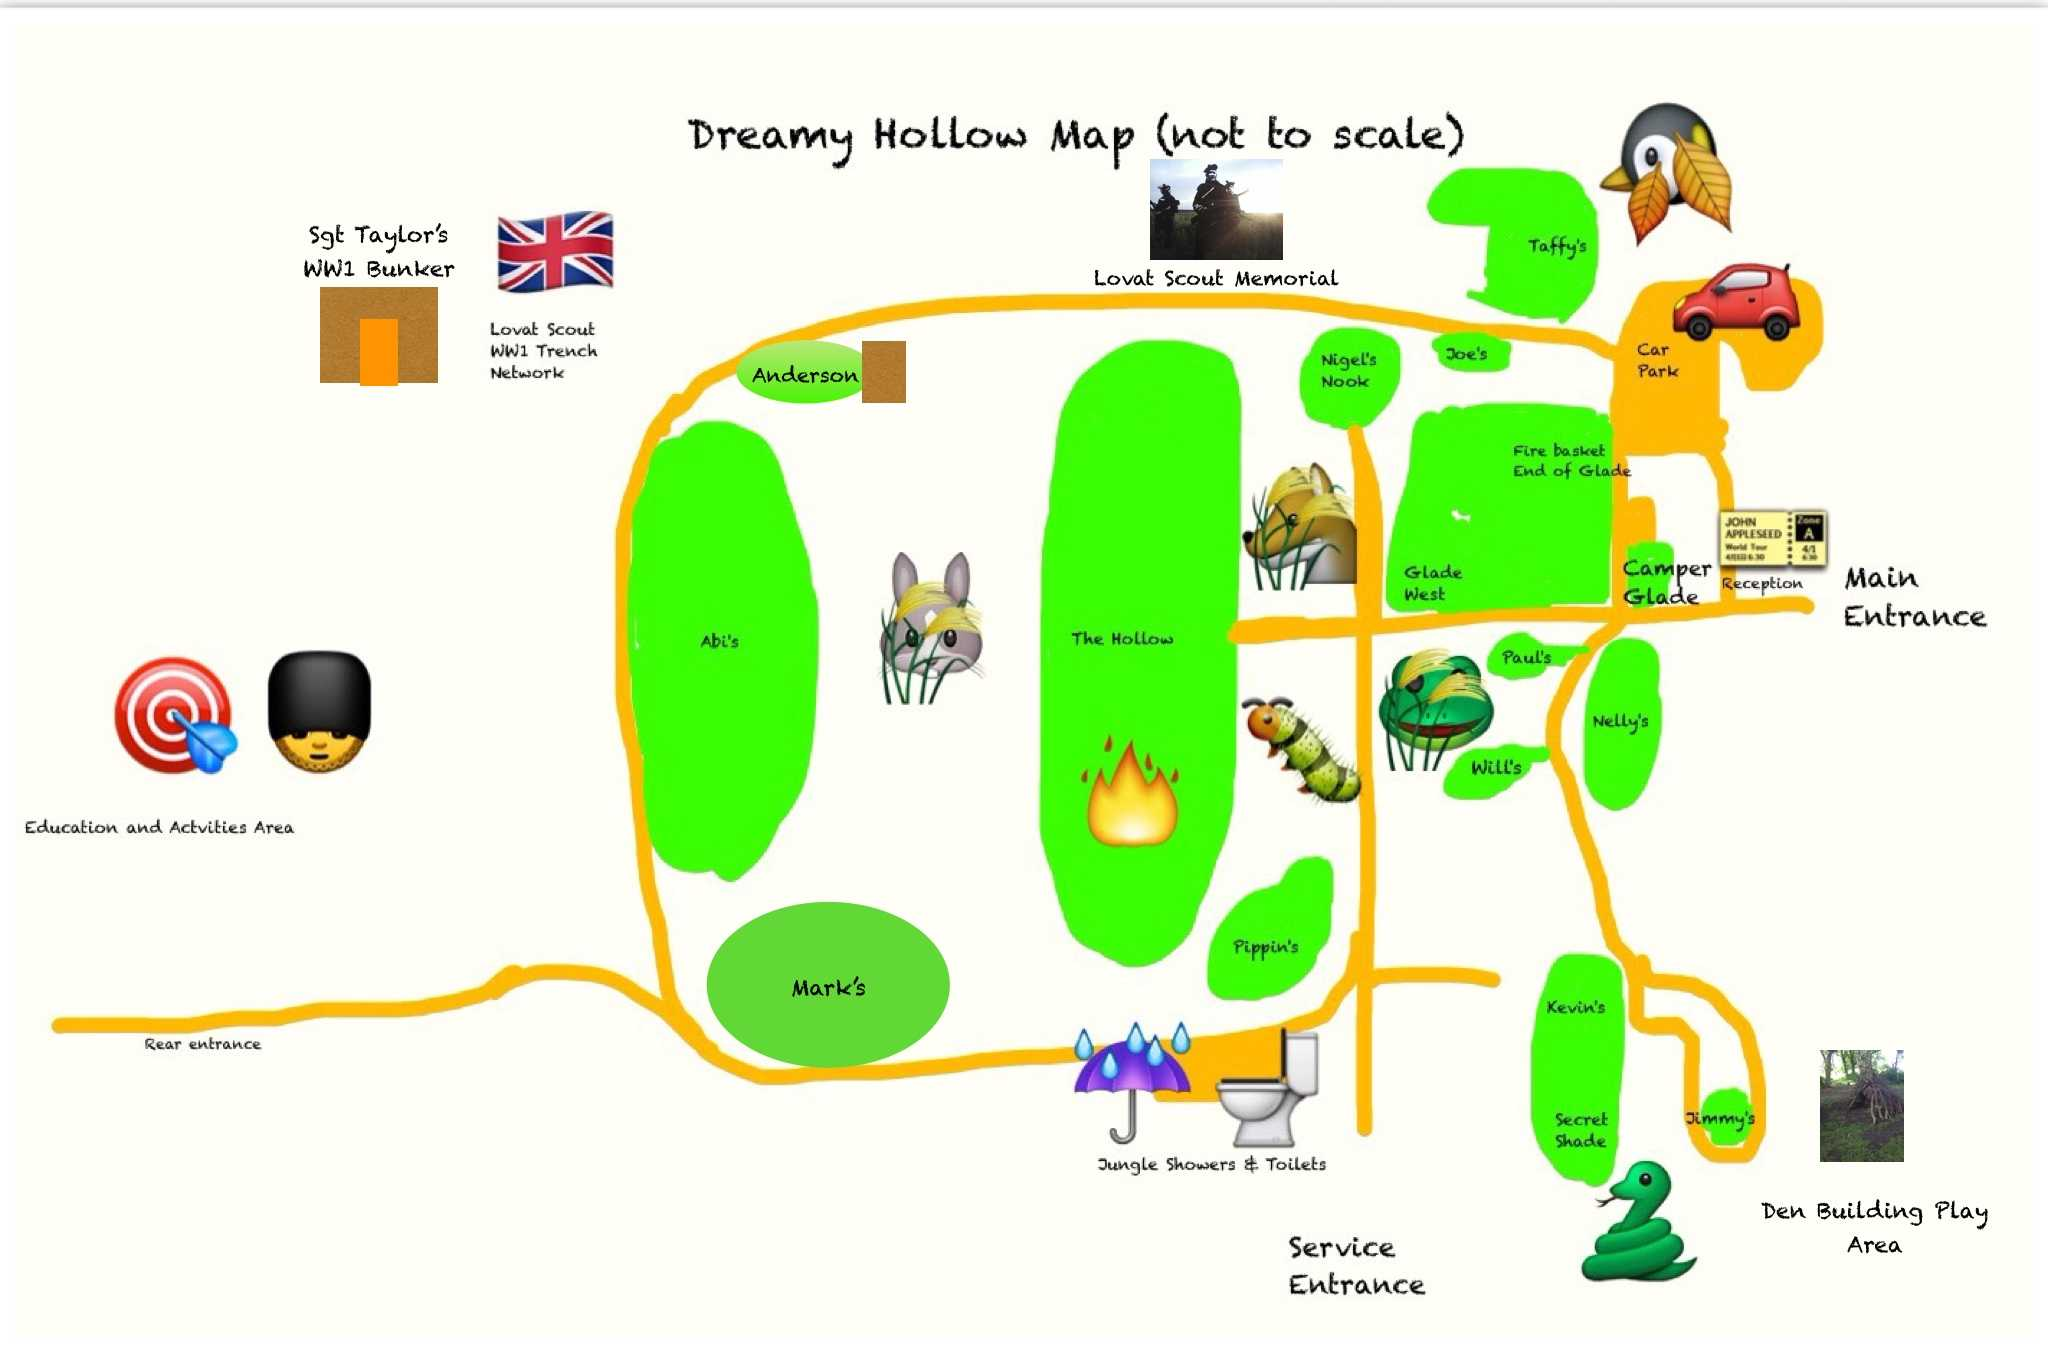 Dreamy Hollow Campsite Map (not to scale)